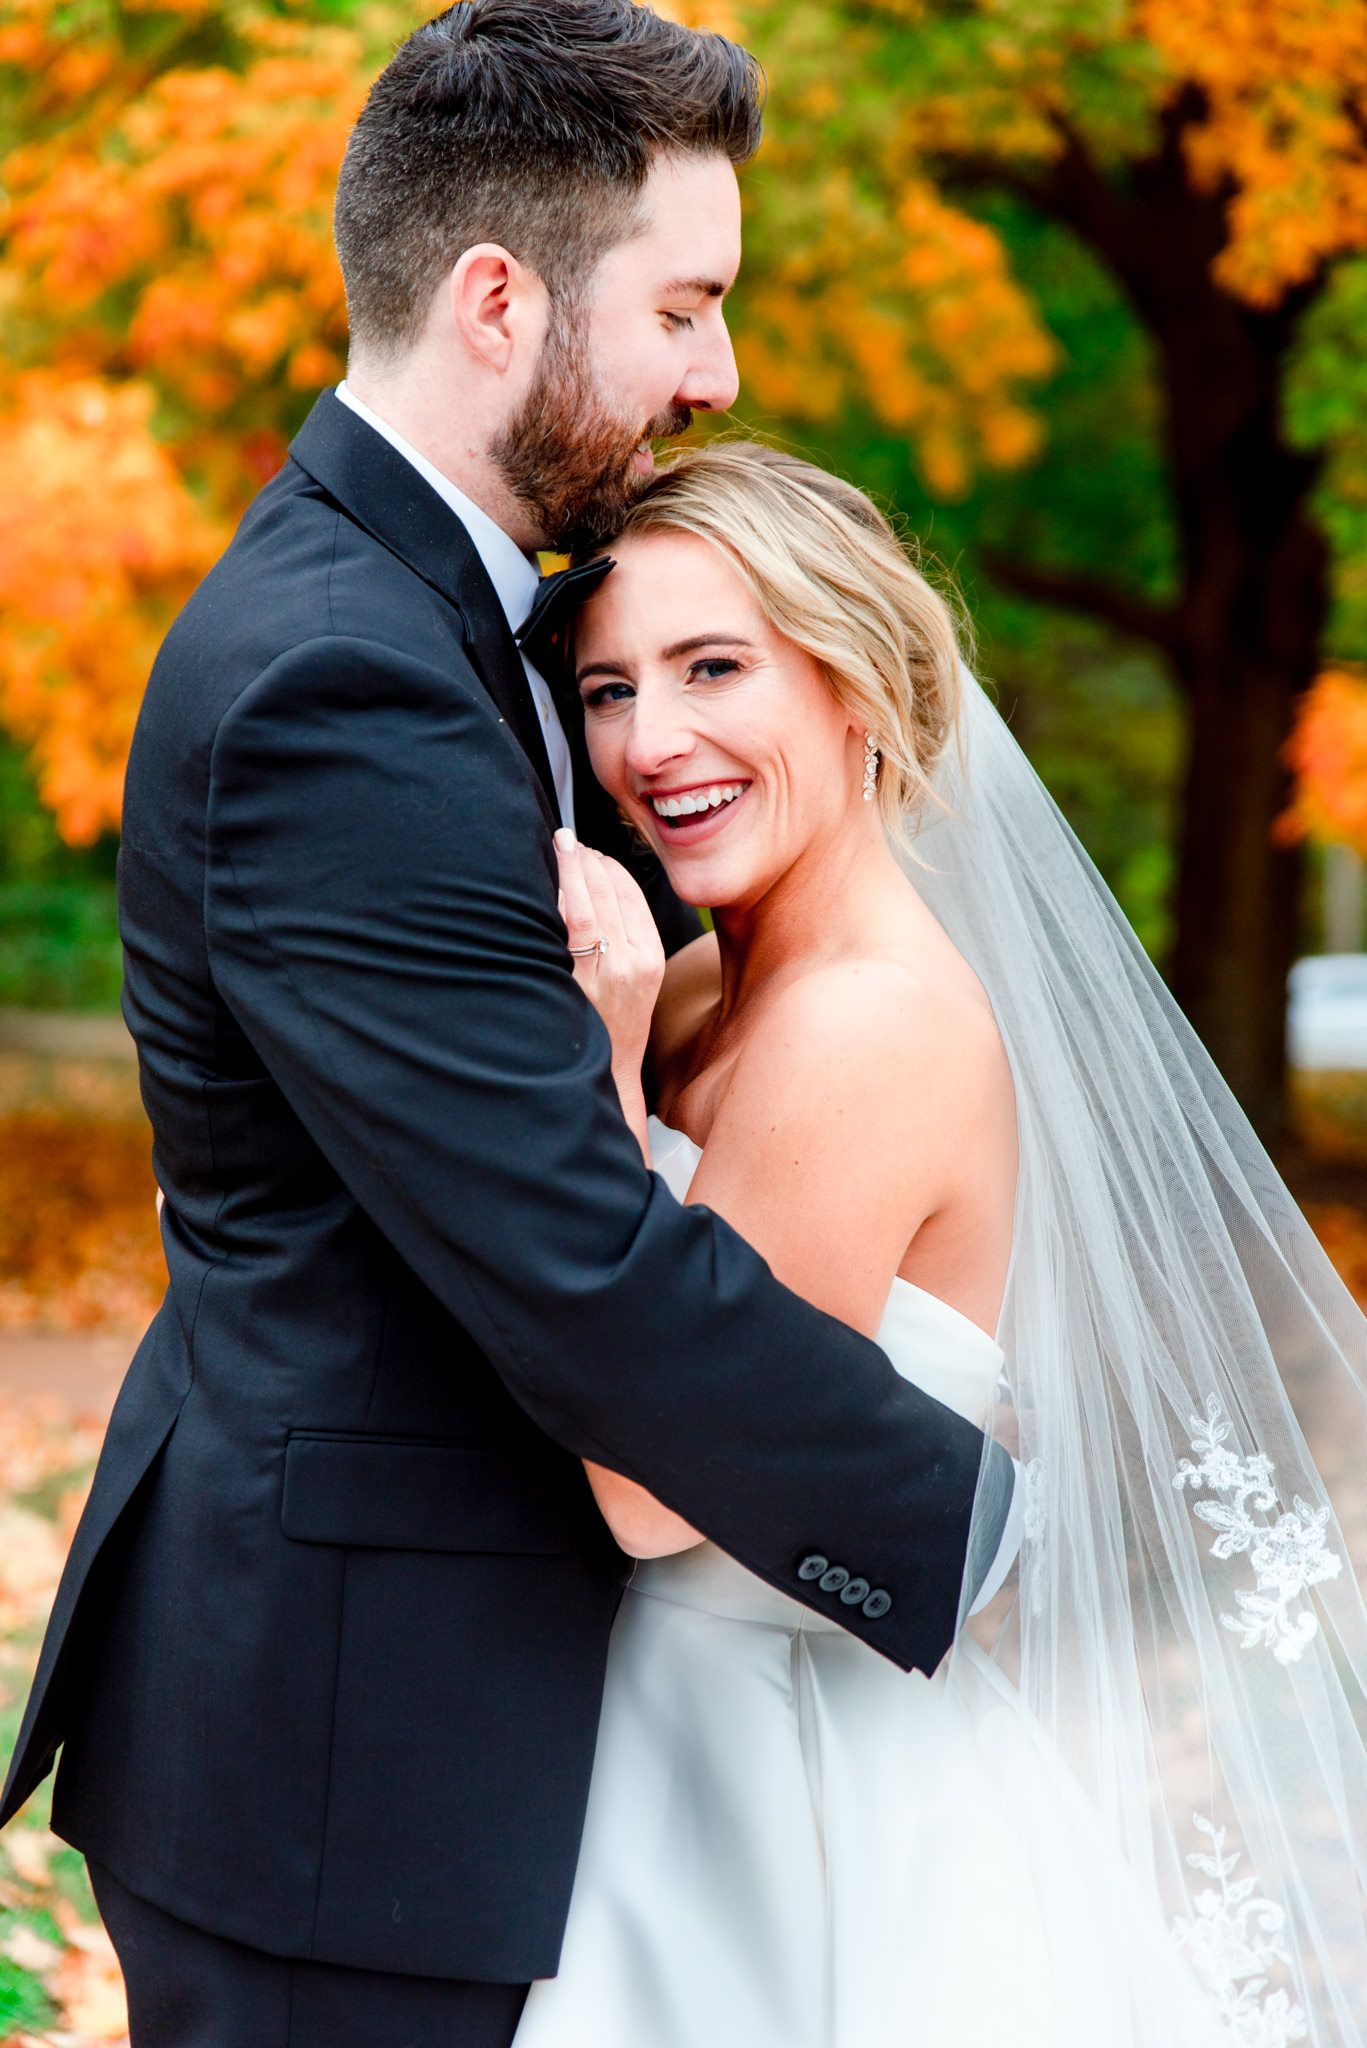 bride with lace veil leaning on grooms chest, who is hugging her in front of orange tree